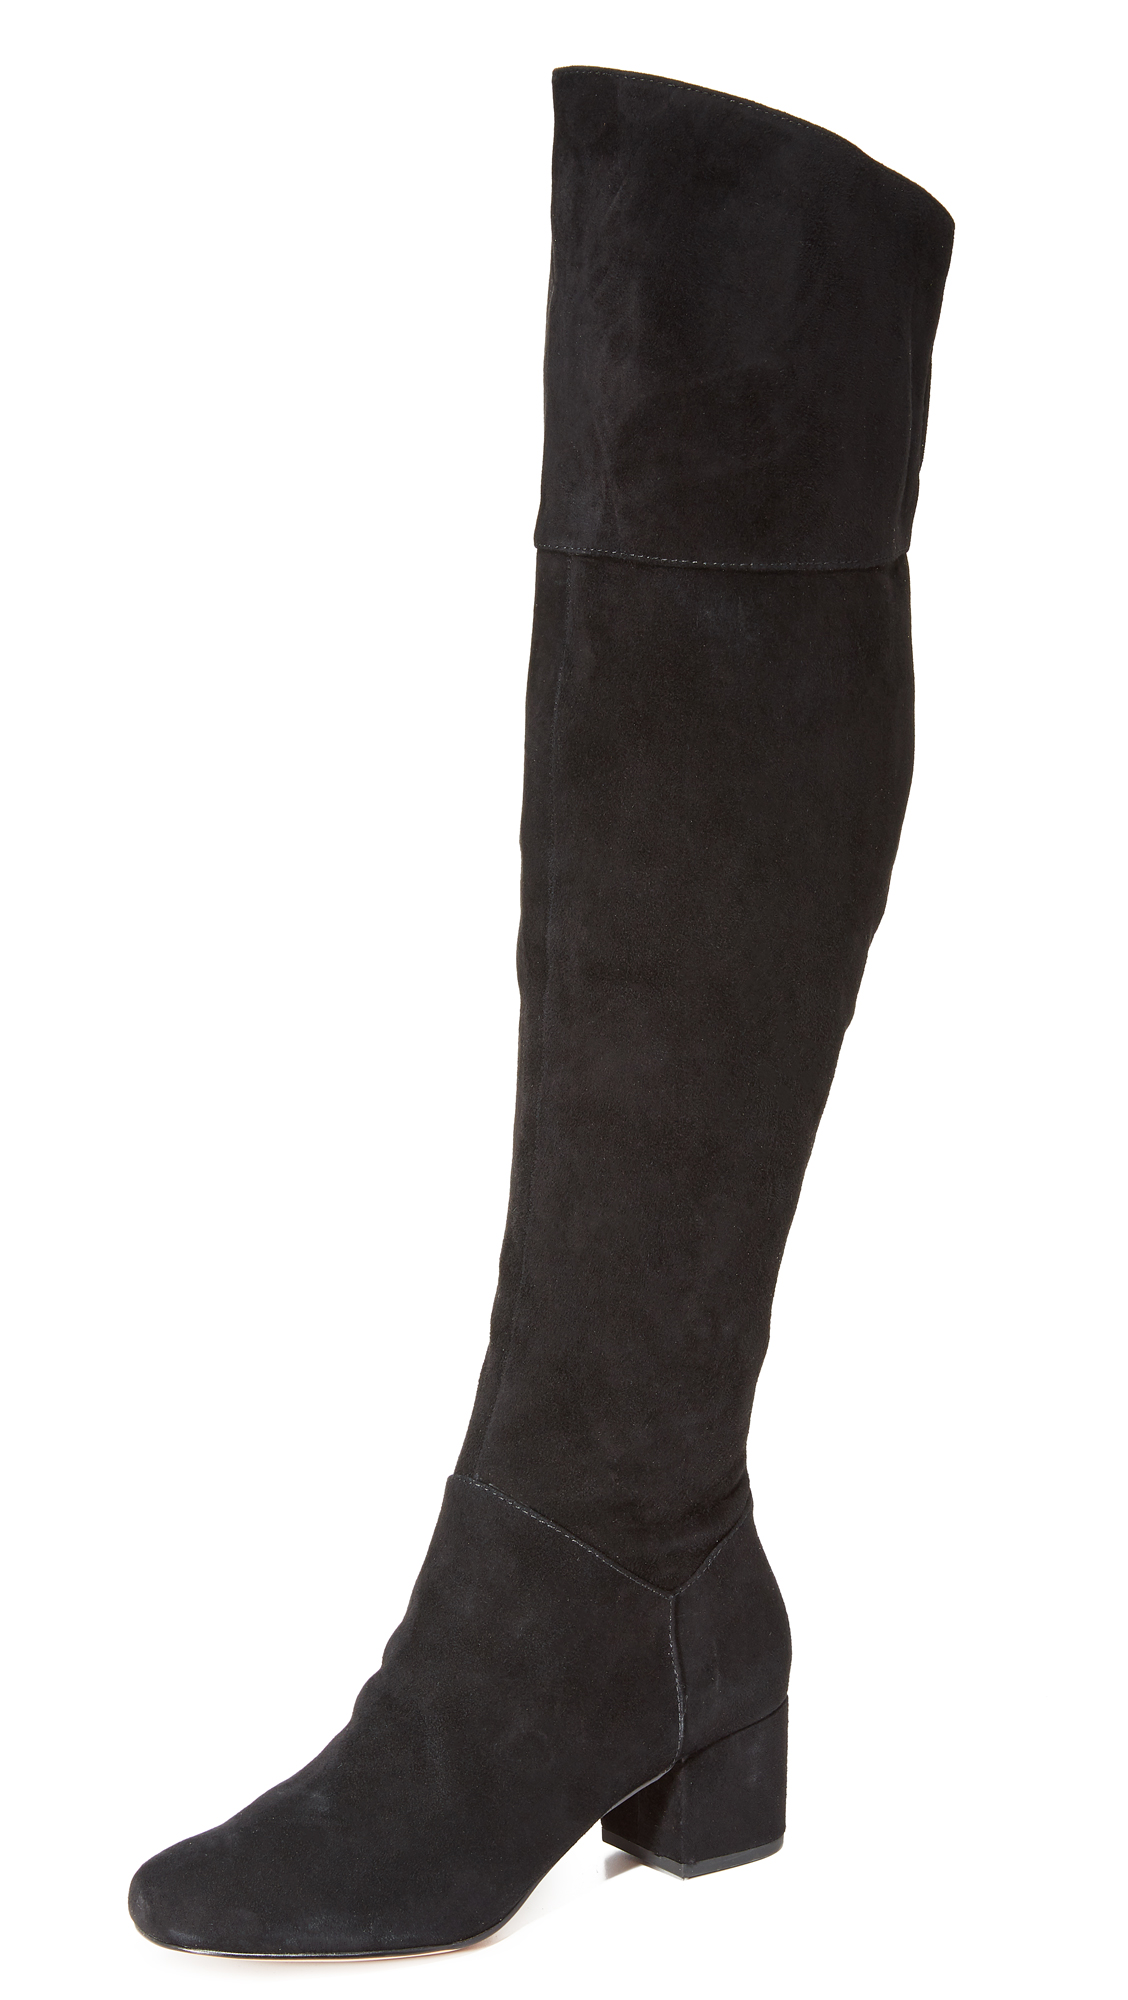 Rebecca Minkoff Shawn Knee High Boots - Black